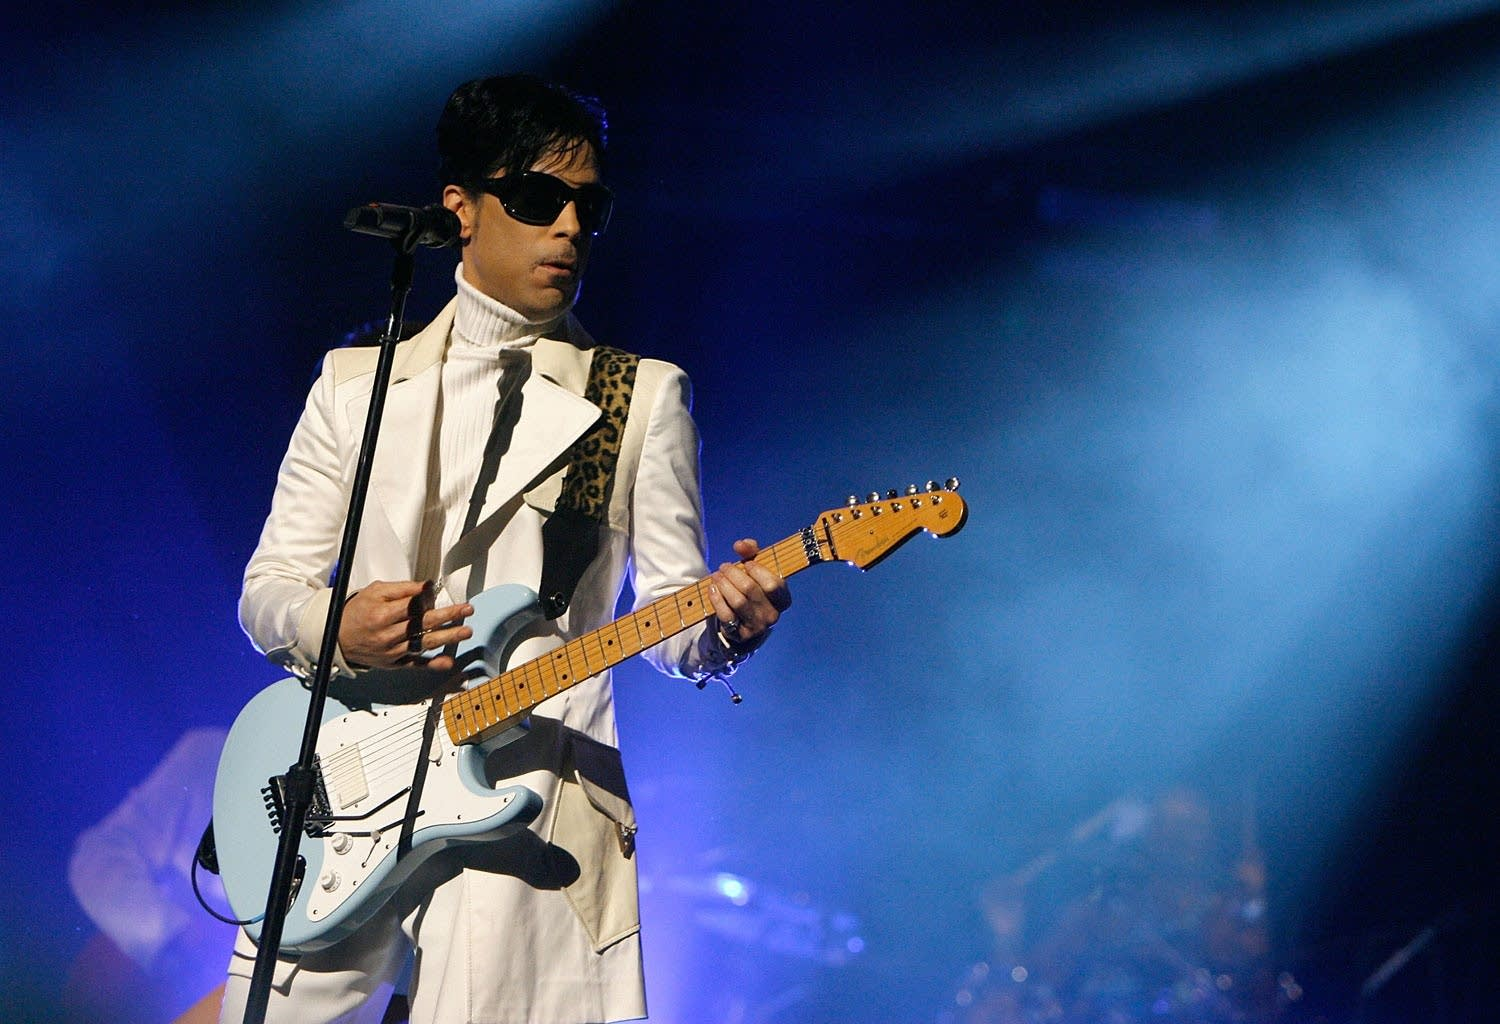 Prince performs at 2007 NCLR ALMA Awards